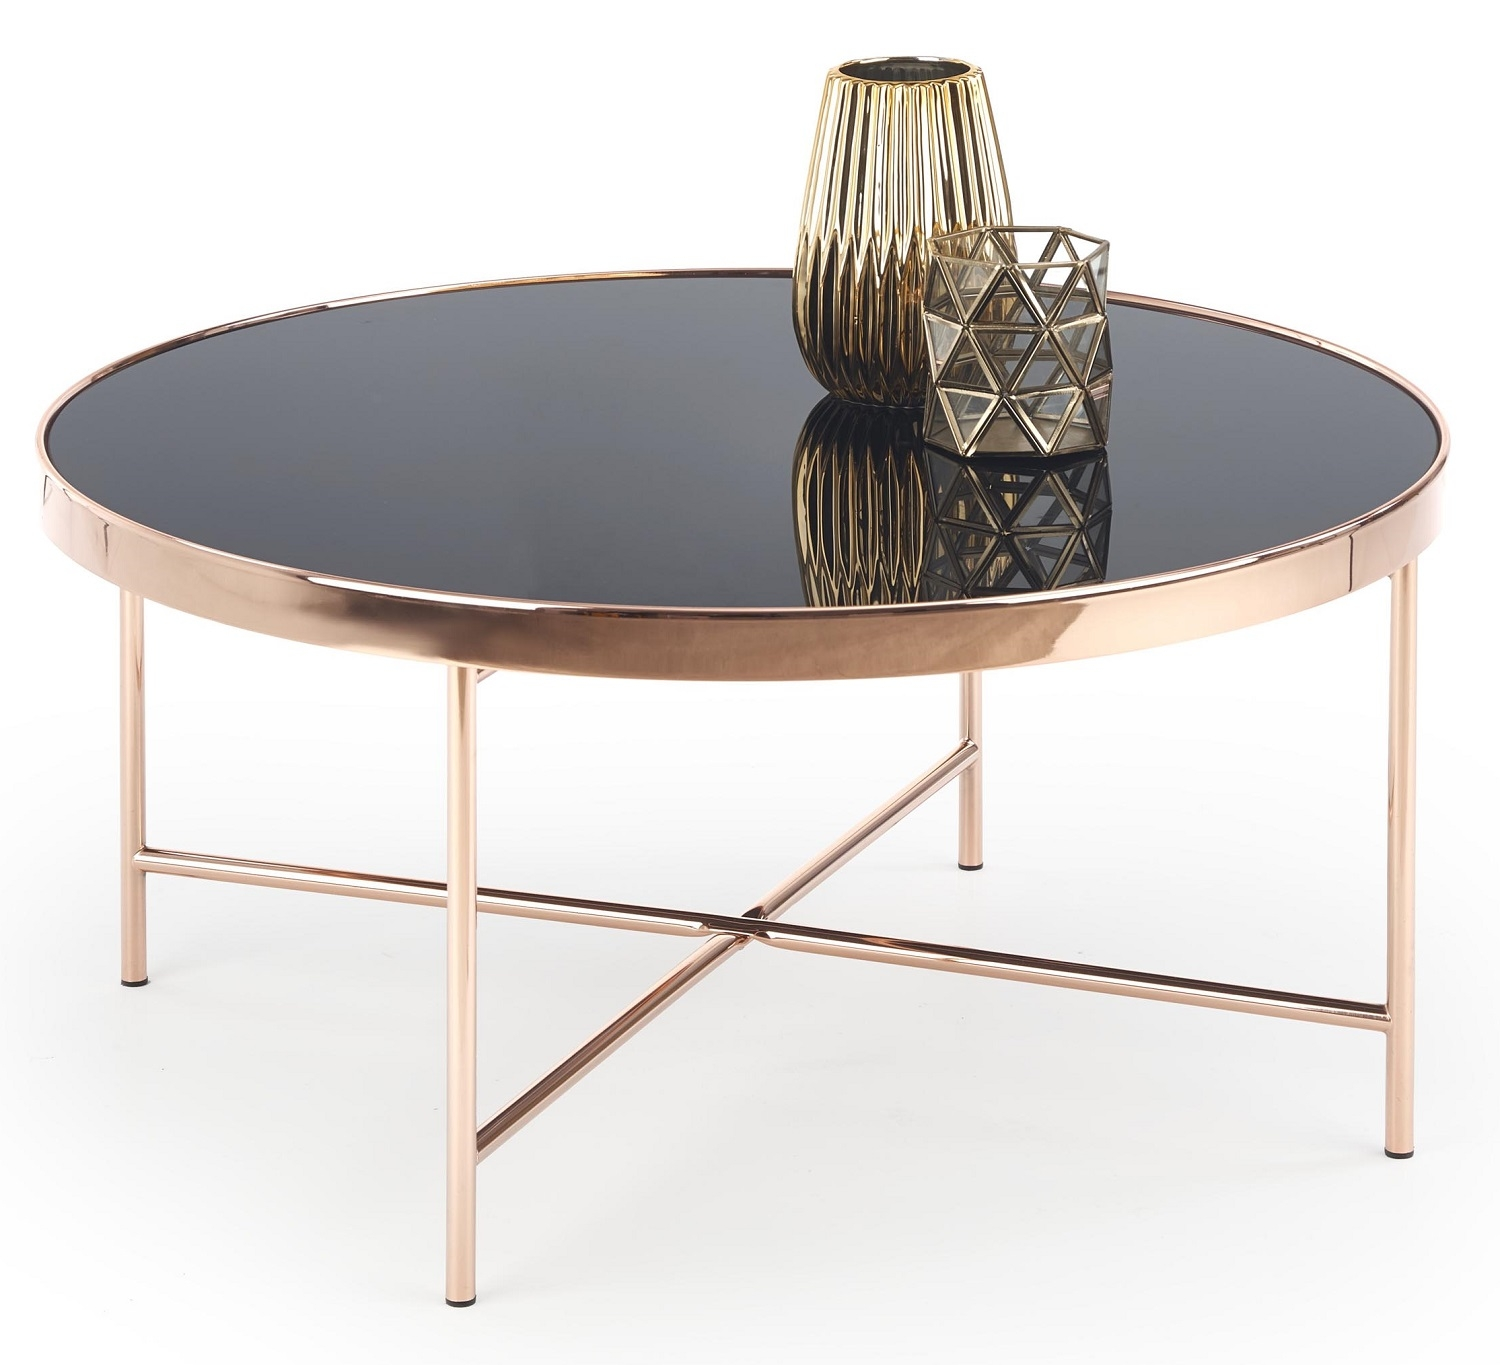 Ronde salontafel Moria 82 cm breed in zwart